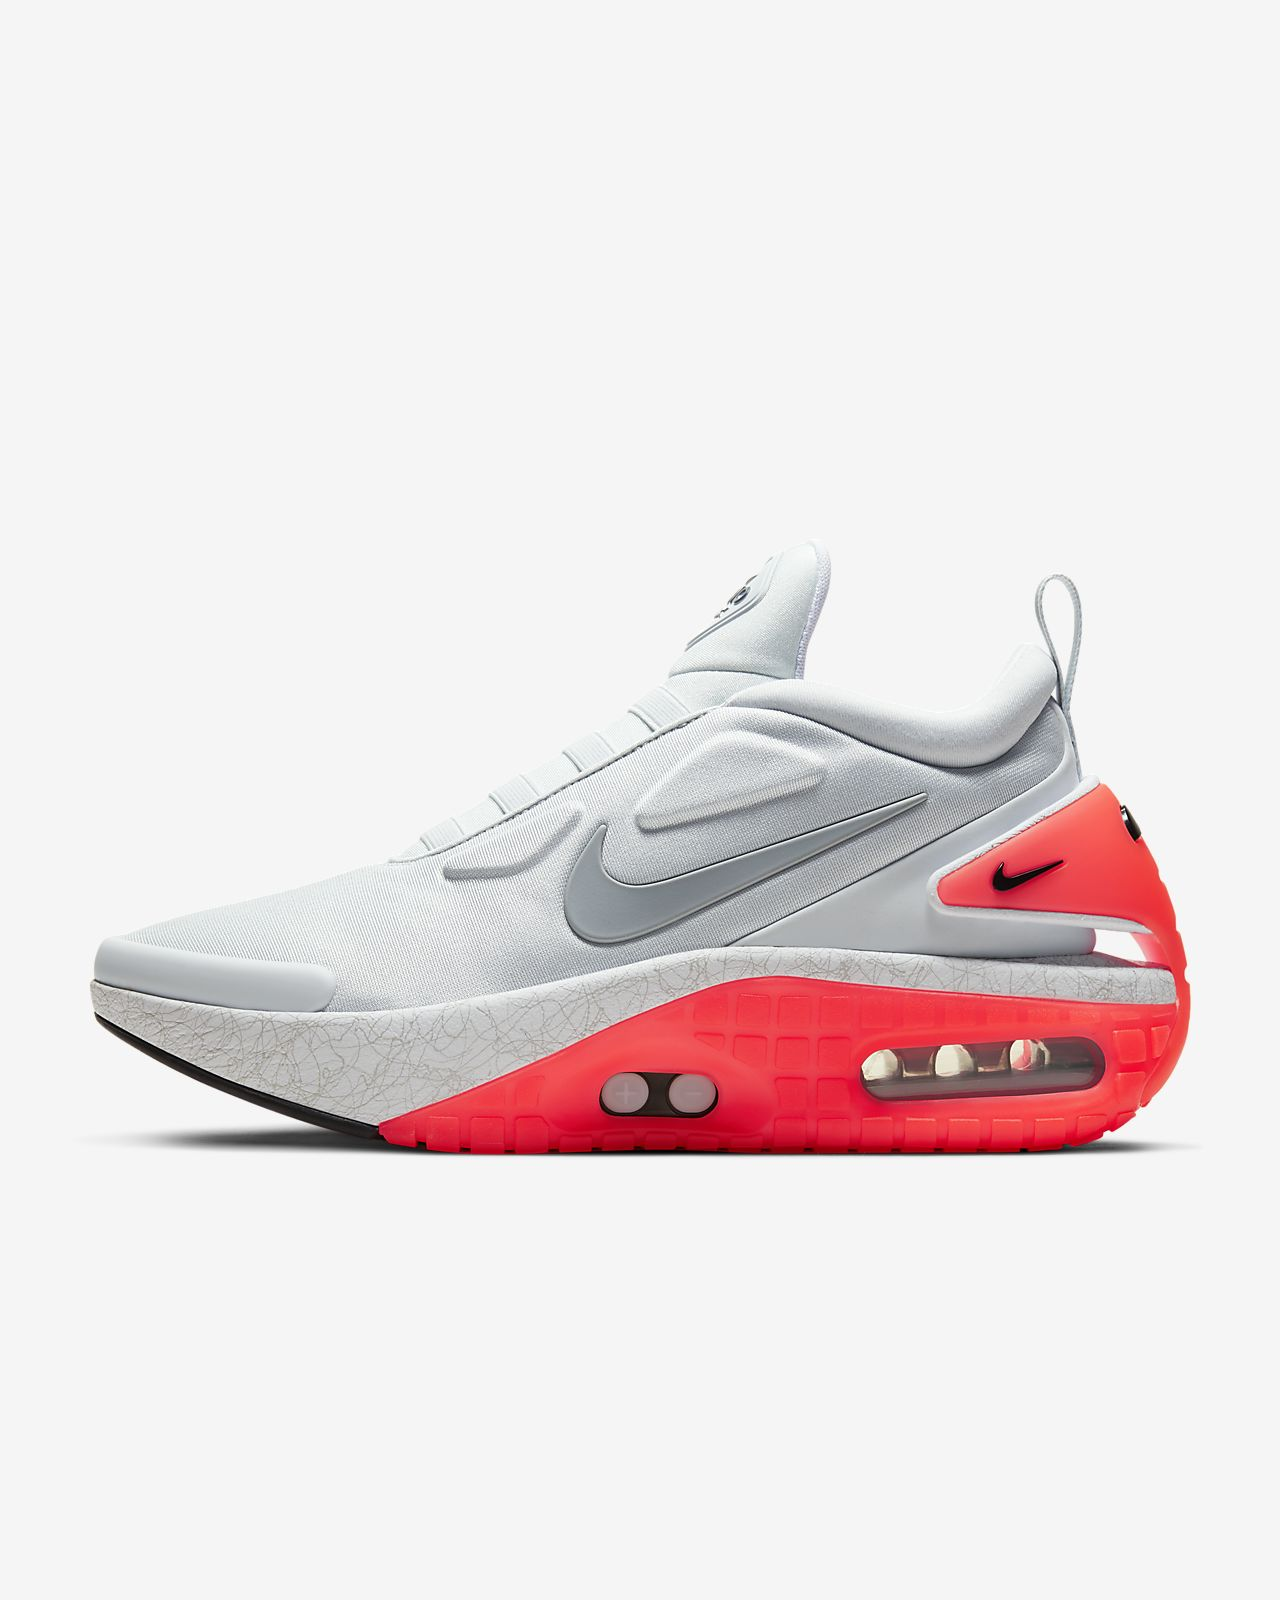 Nike Shoes Mens : Shoes for Sale